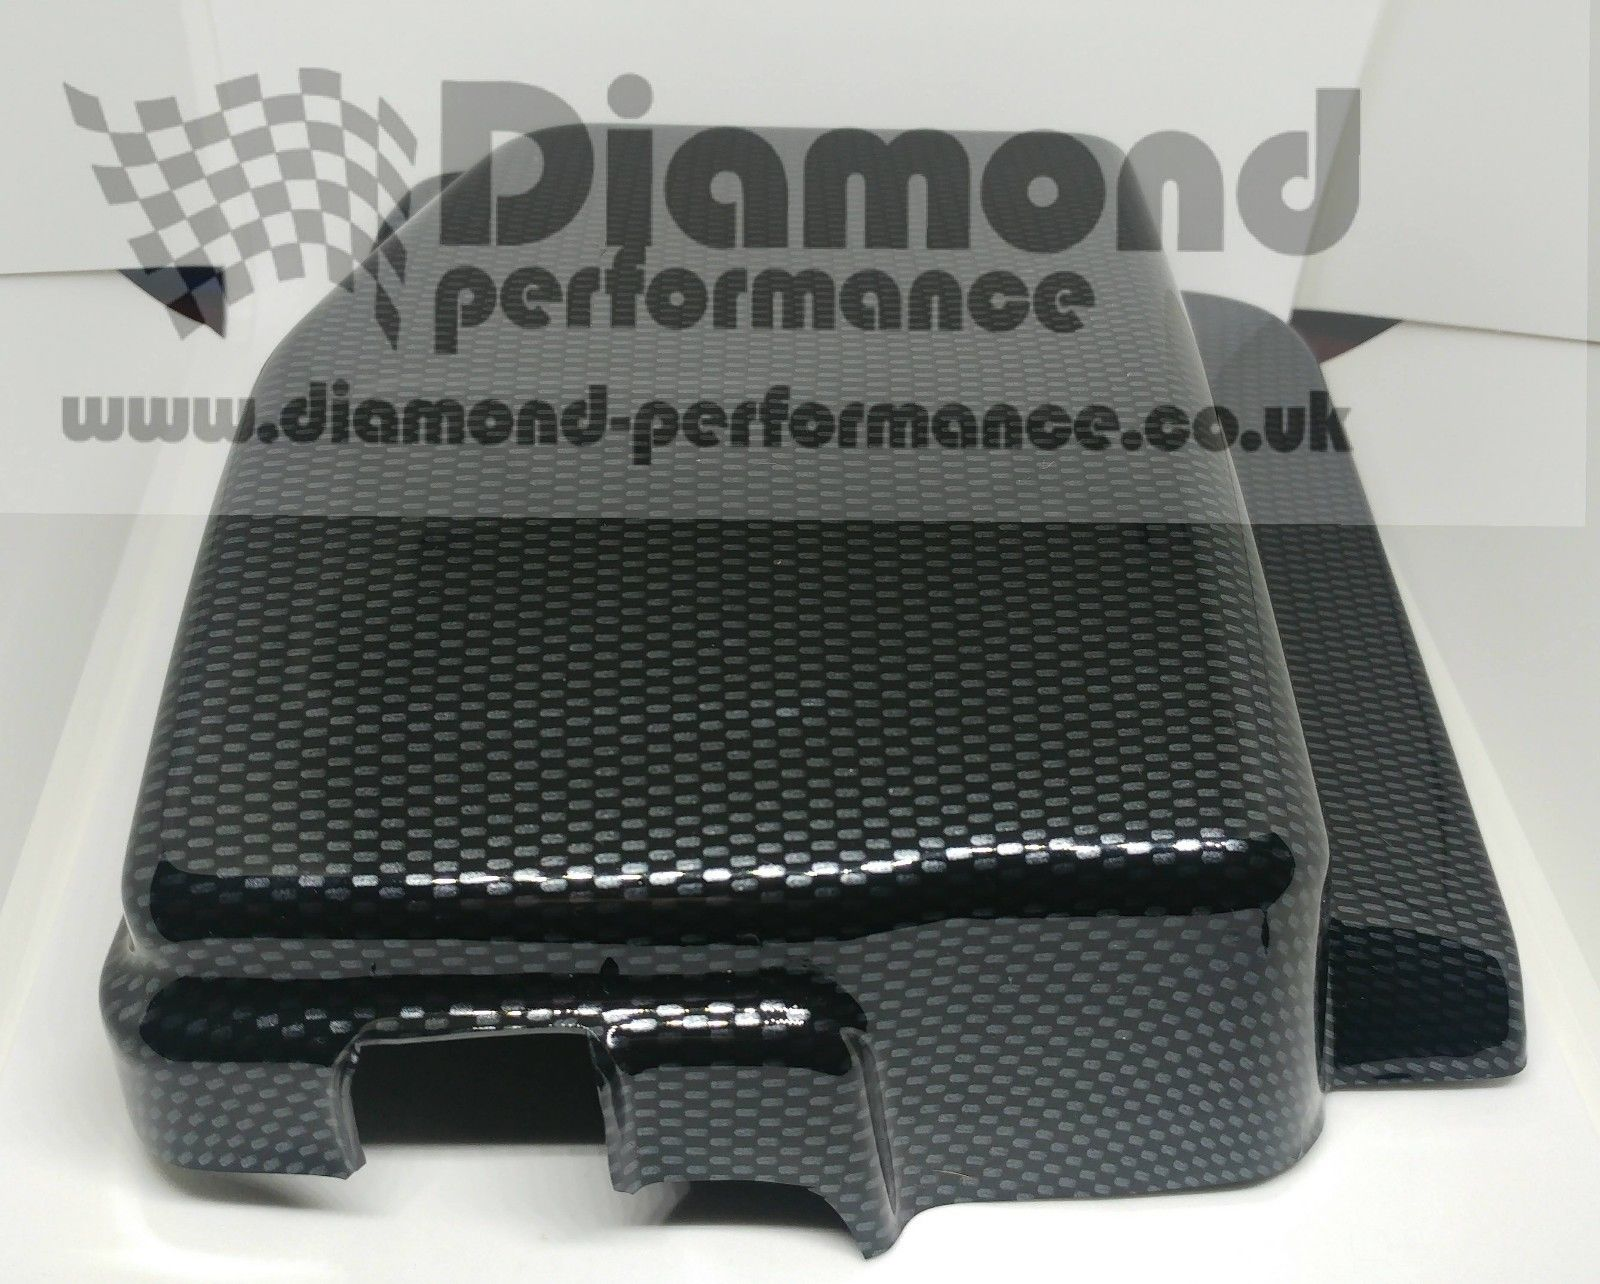 Renault Clio Fuse Box Price : Renault clio mk all models fuse box cover carbon fibre